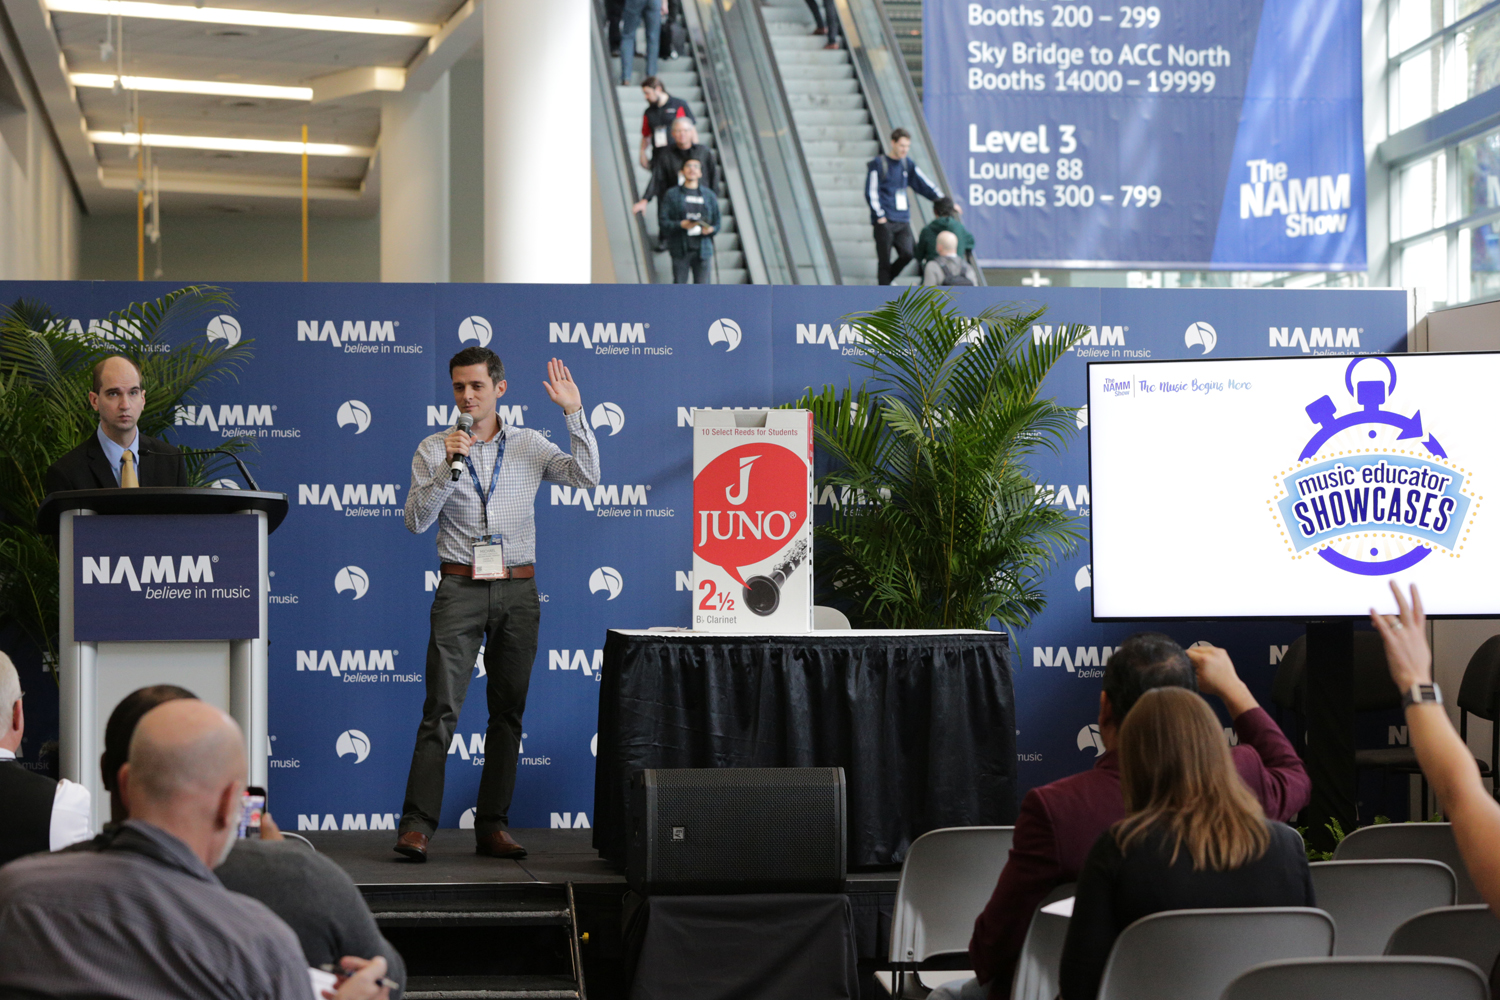 Music Education Days at The NAMM Show